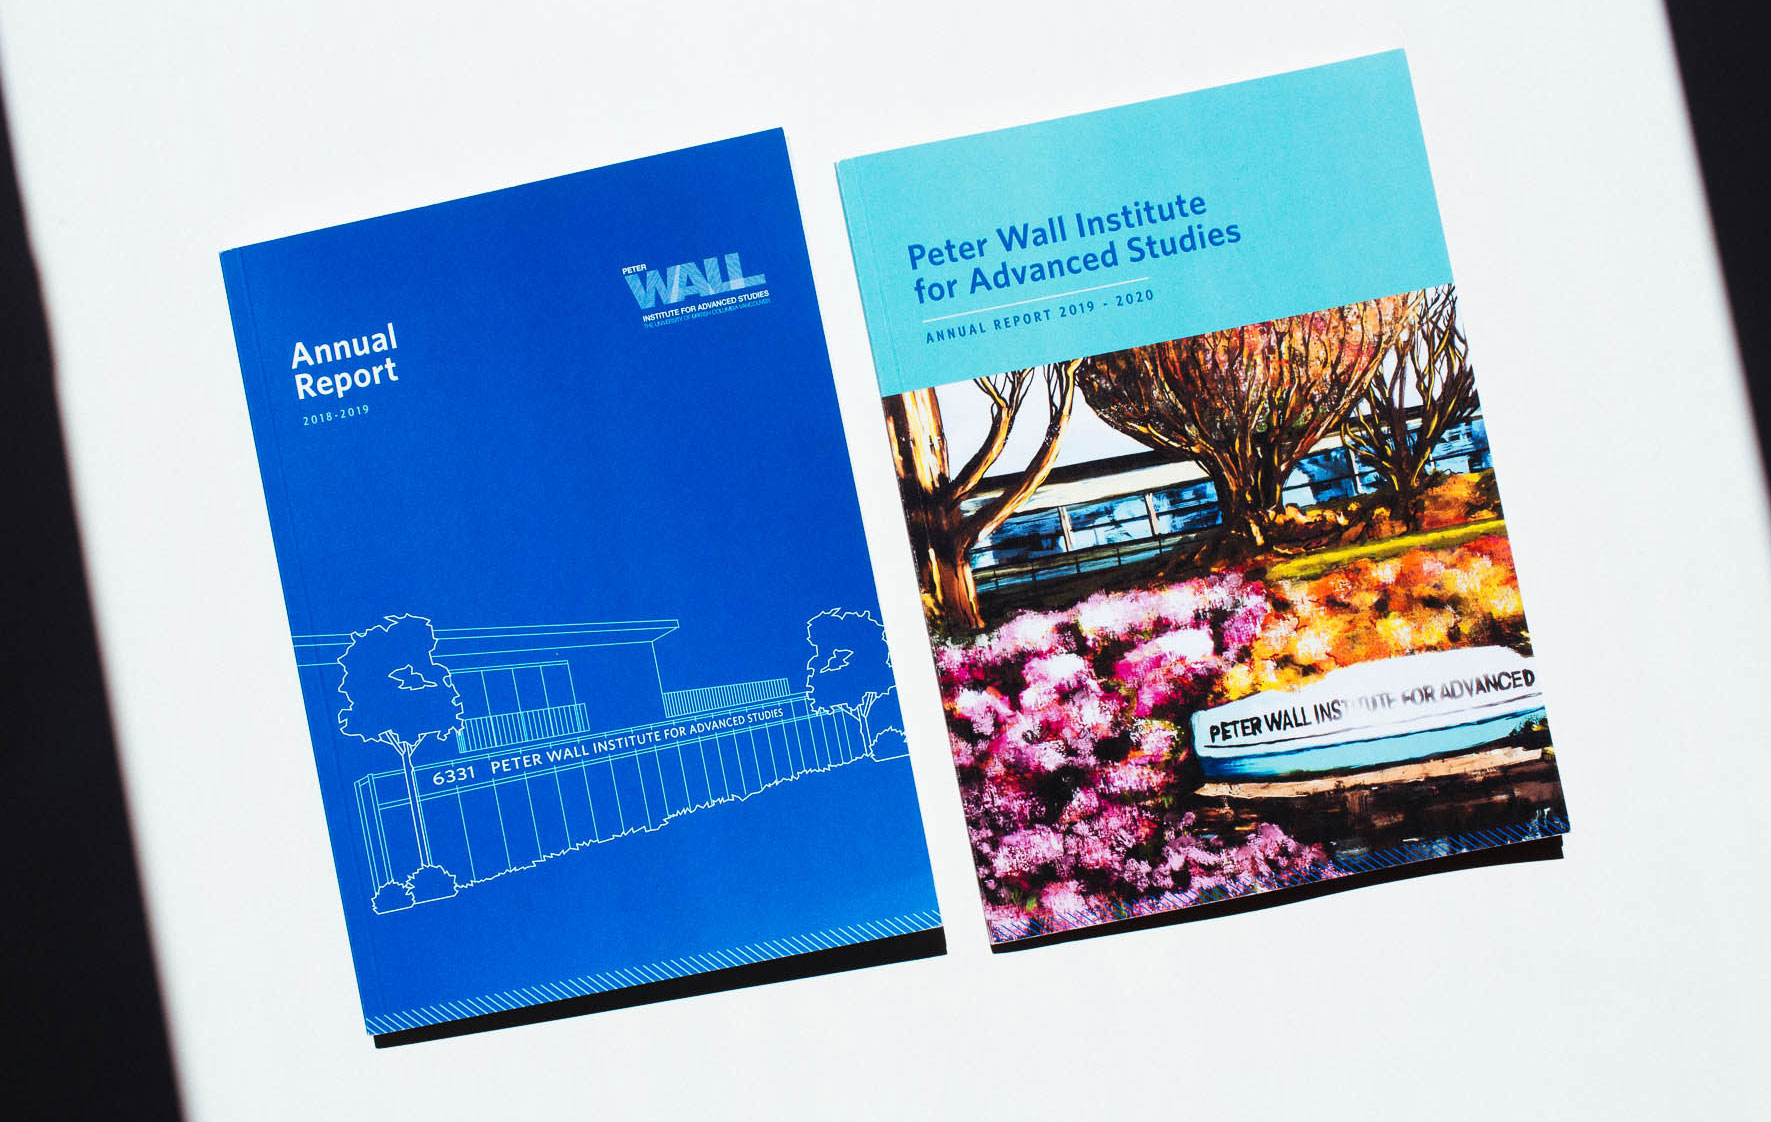 Peter Wall Institute for Advanced Studies printed Annual Report Cover Designs | www.alicia-carvalho.com